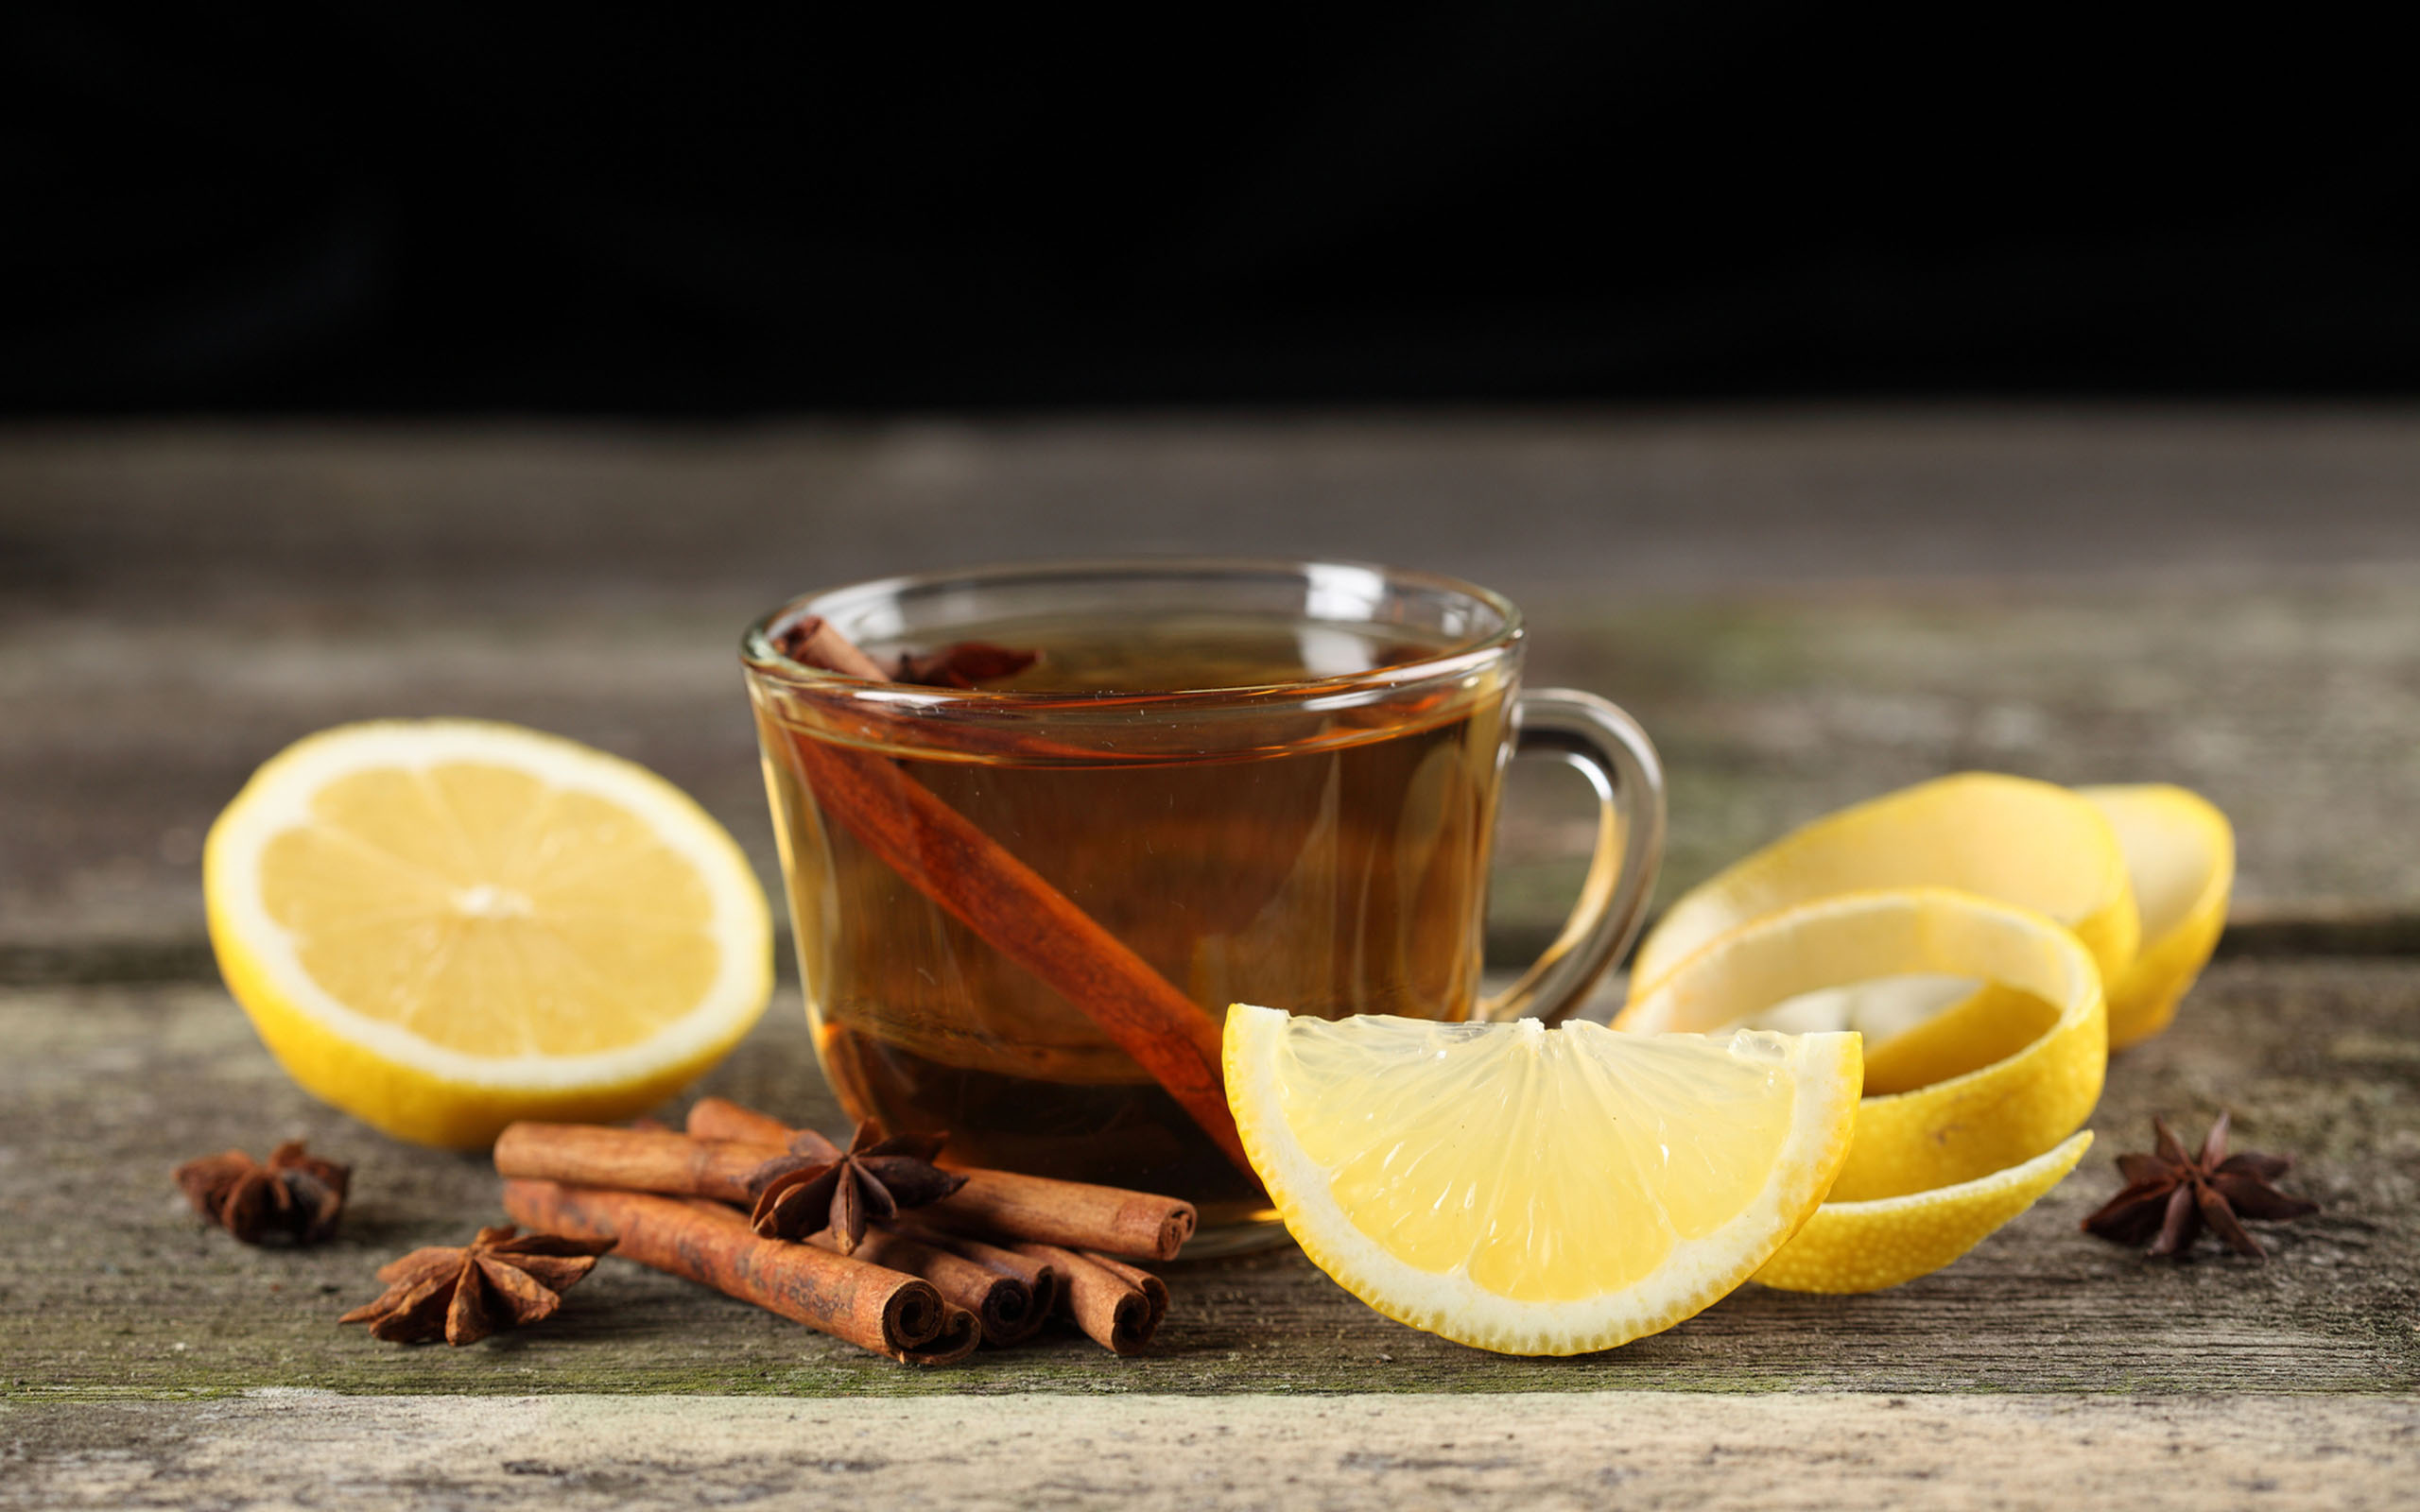 Fresh New Fall Hd Wallpapers Hot Tea With Lemon And Cinnamon Winter Drink